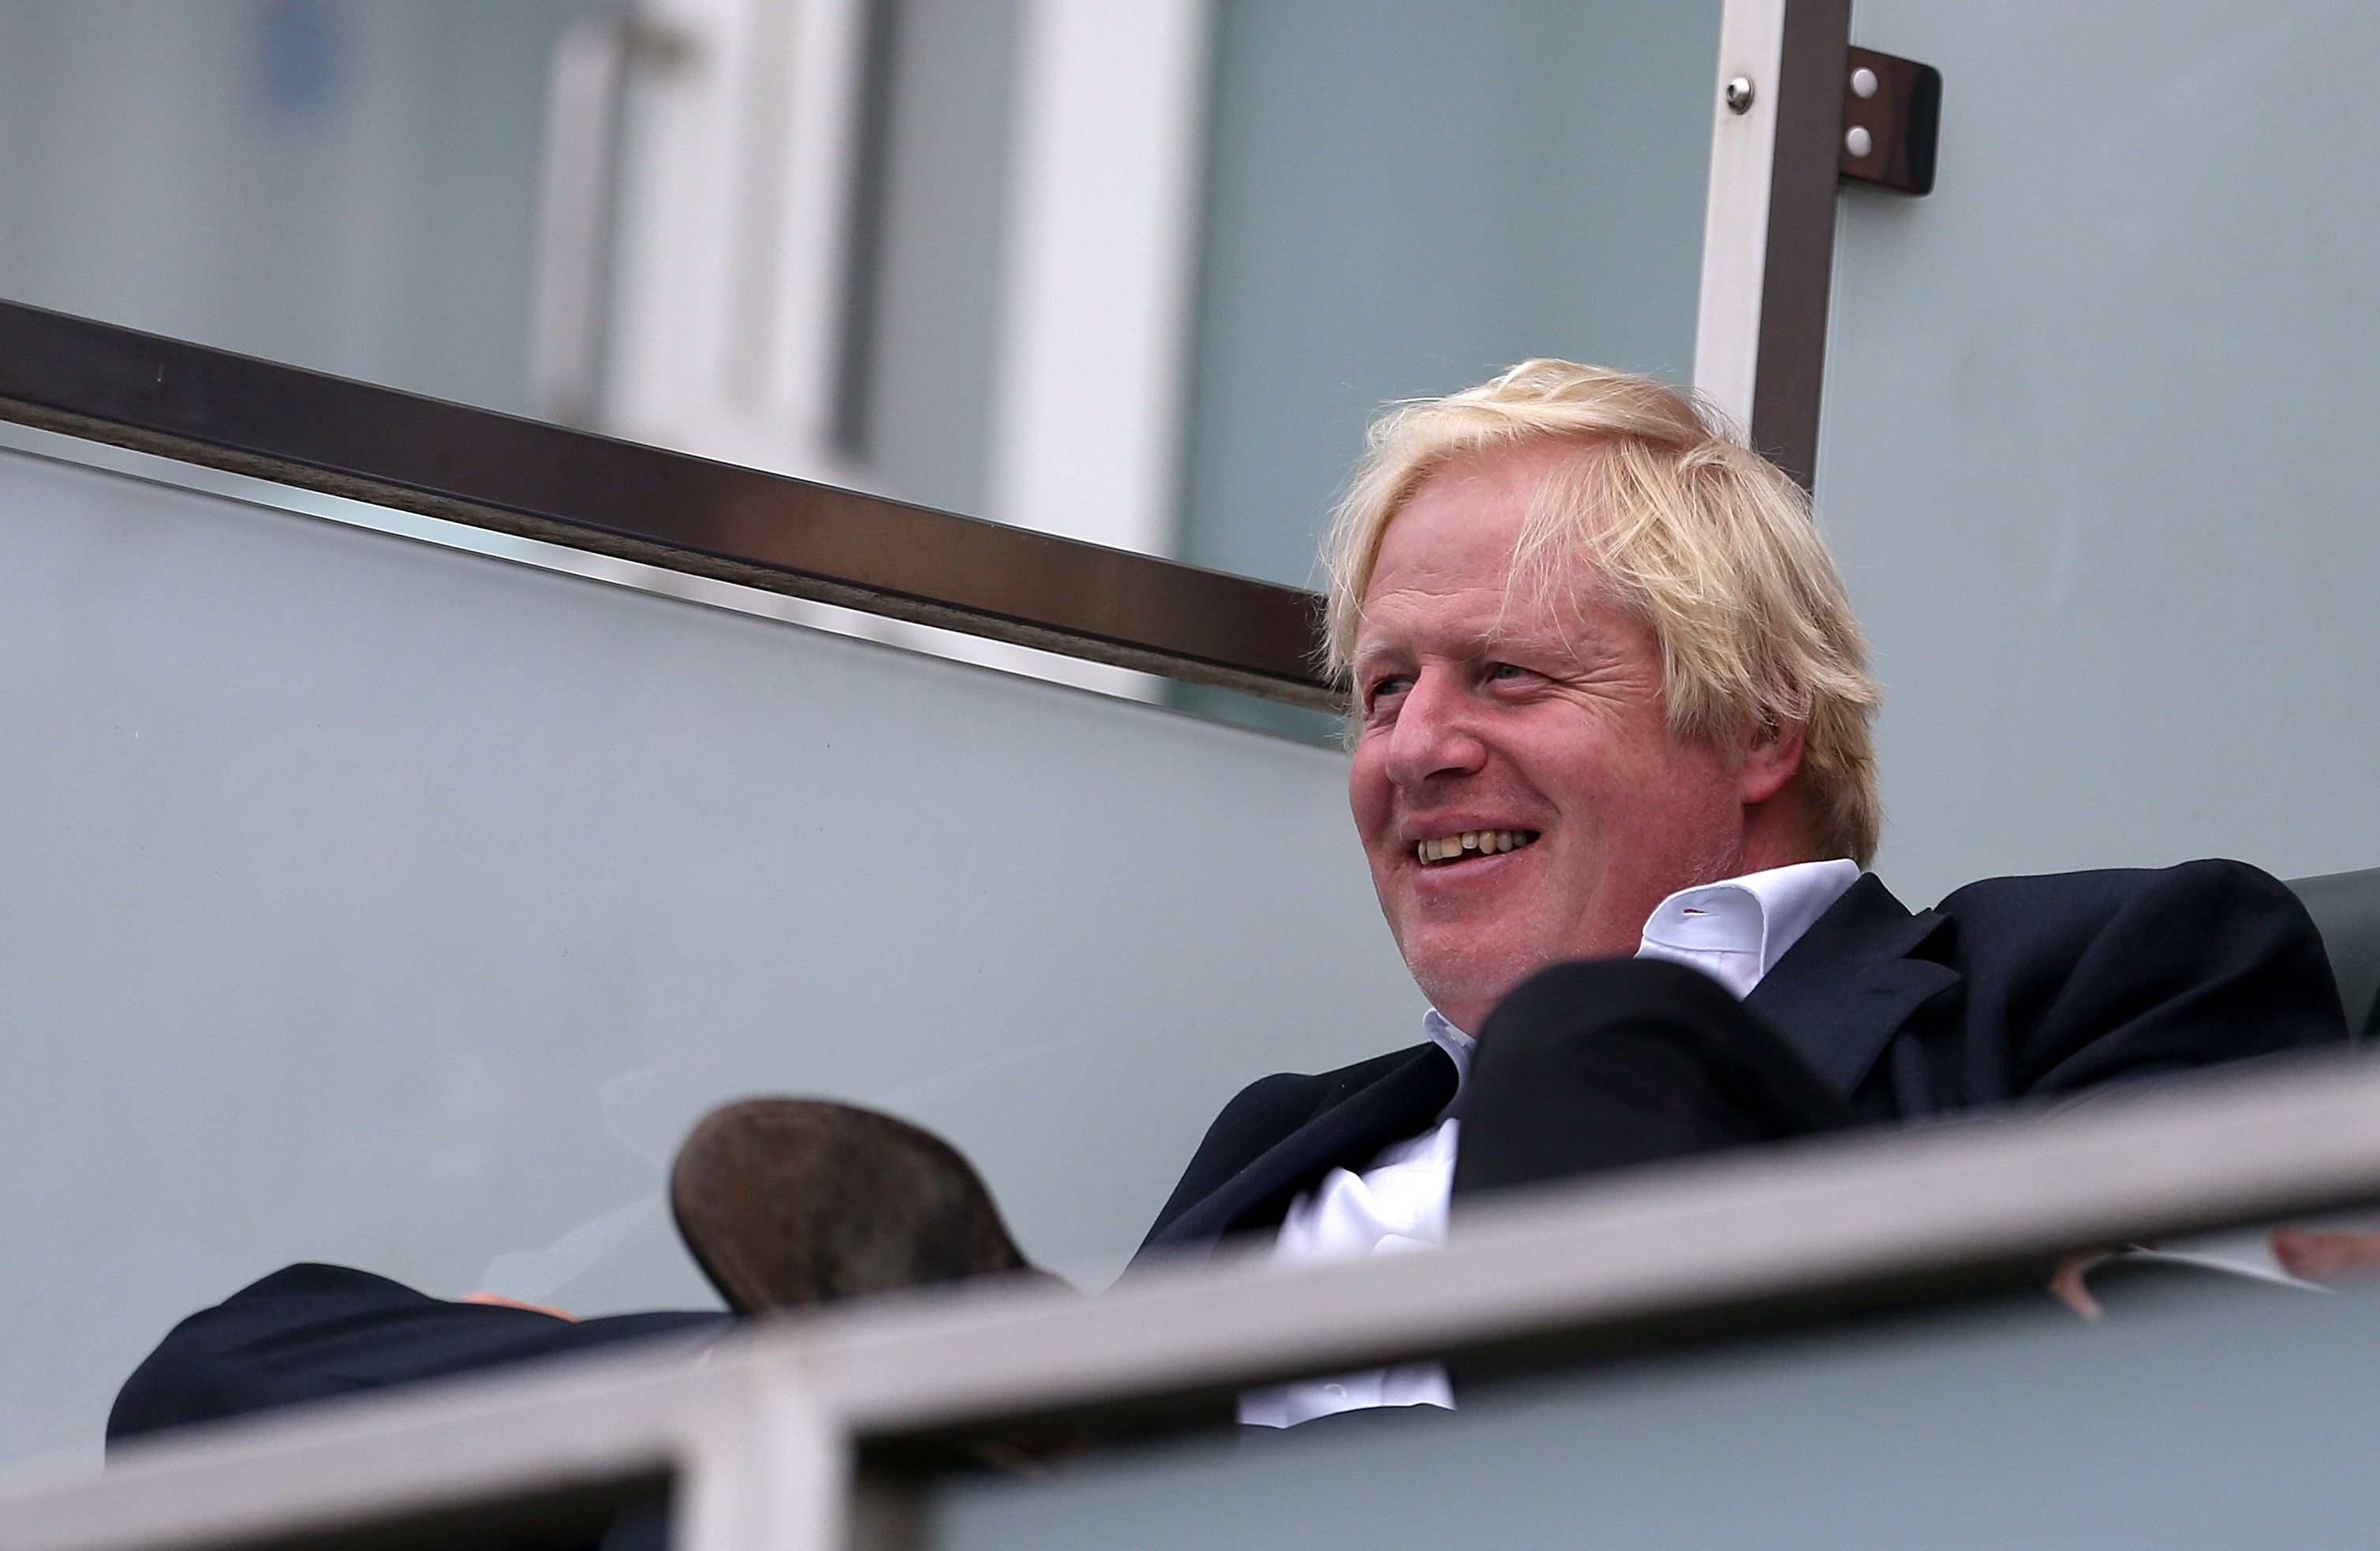 Boris Johnson calls on Prime Minister to `chuck Chequers´